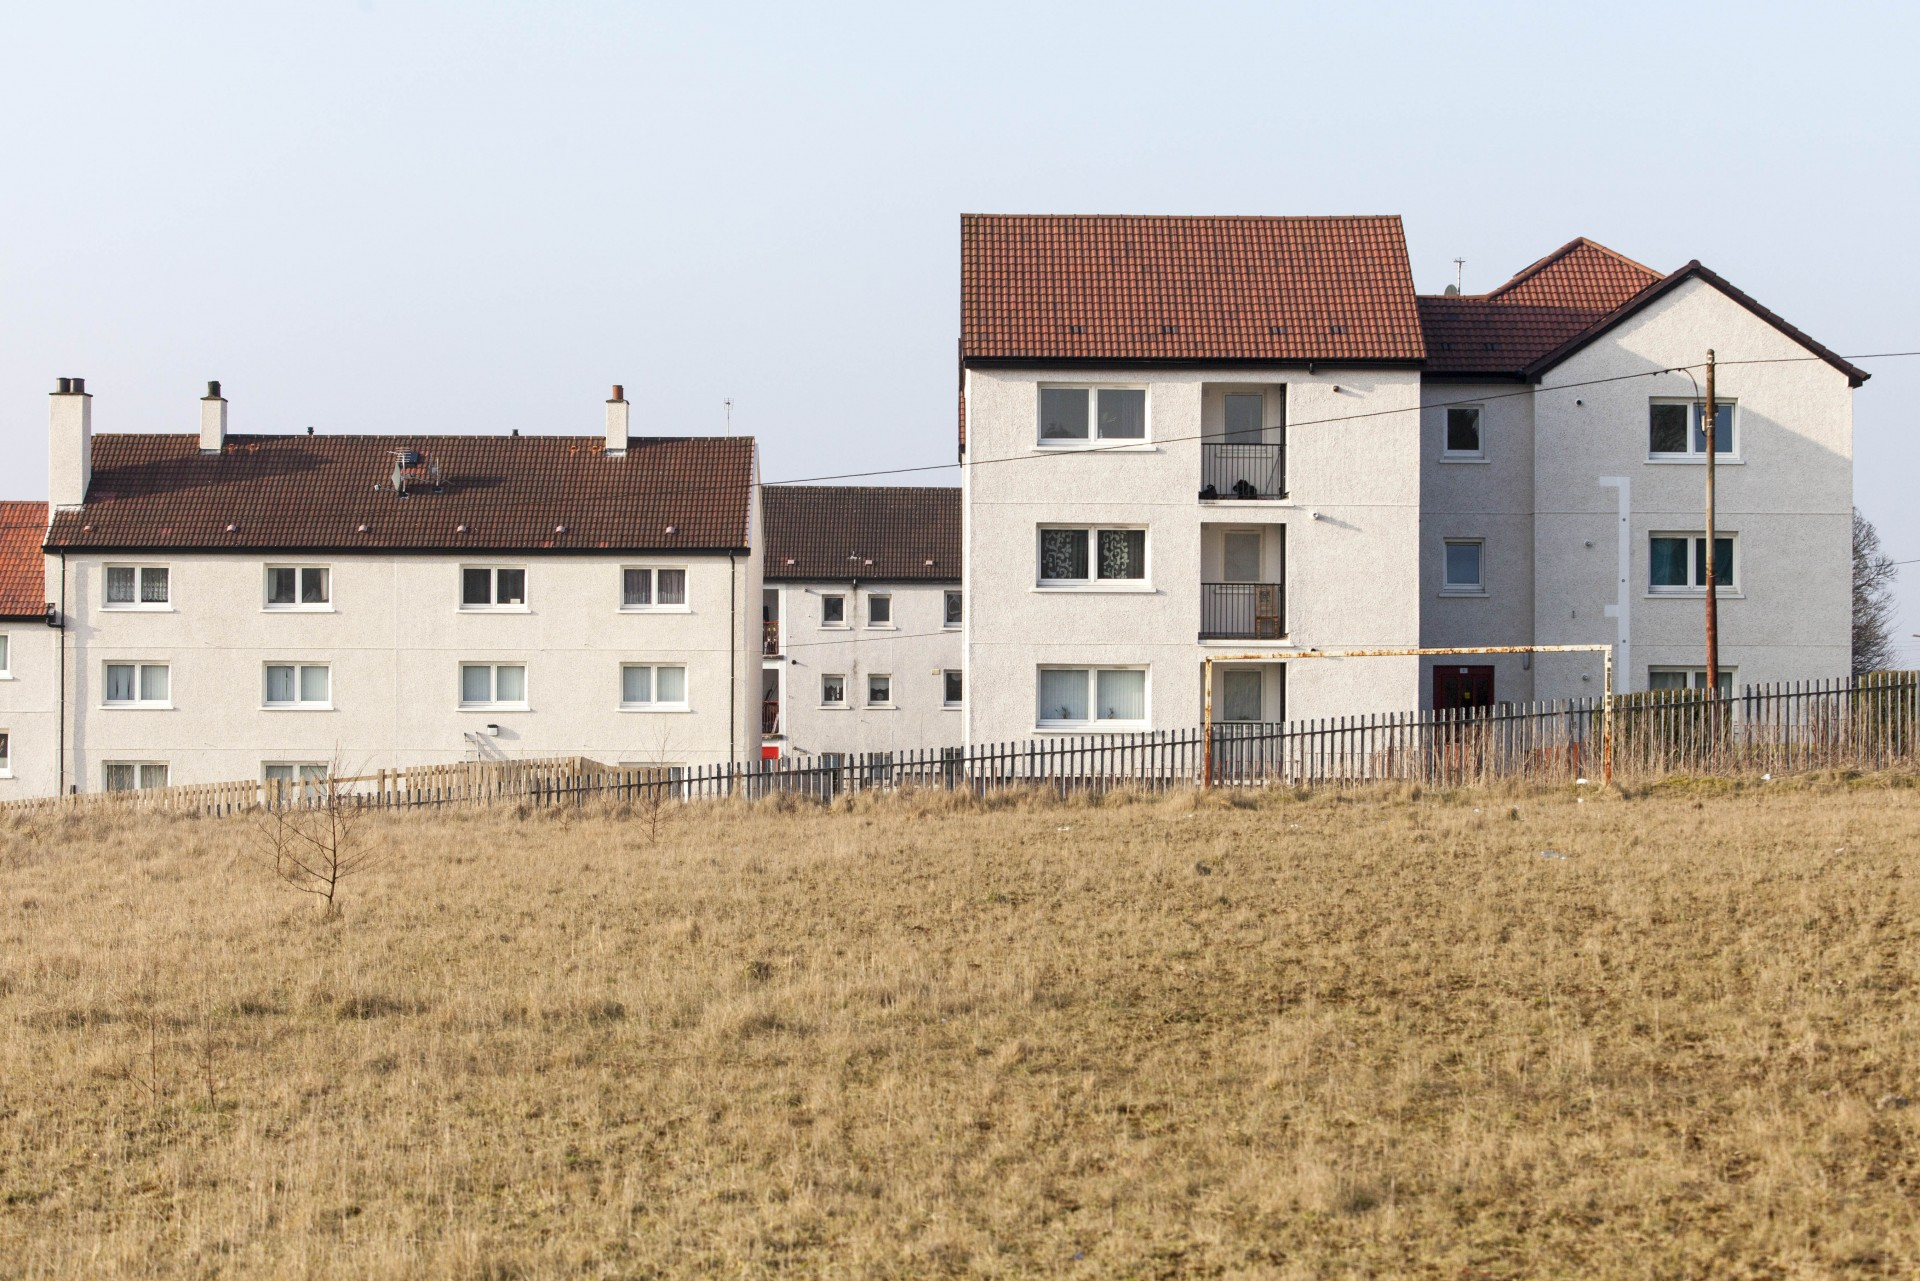 Colin James Tennant: Easterhouse on Film